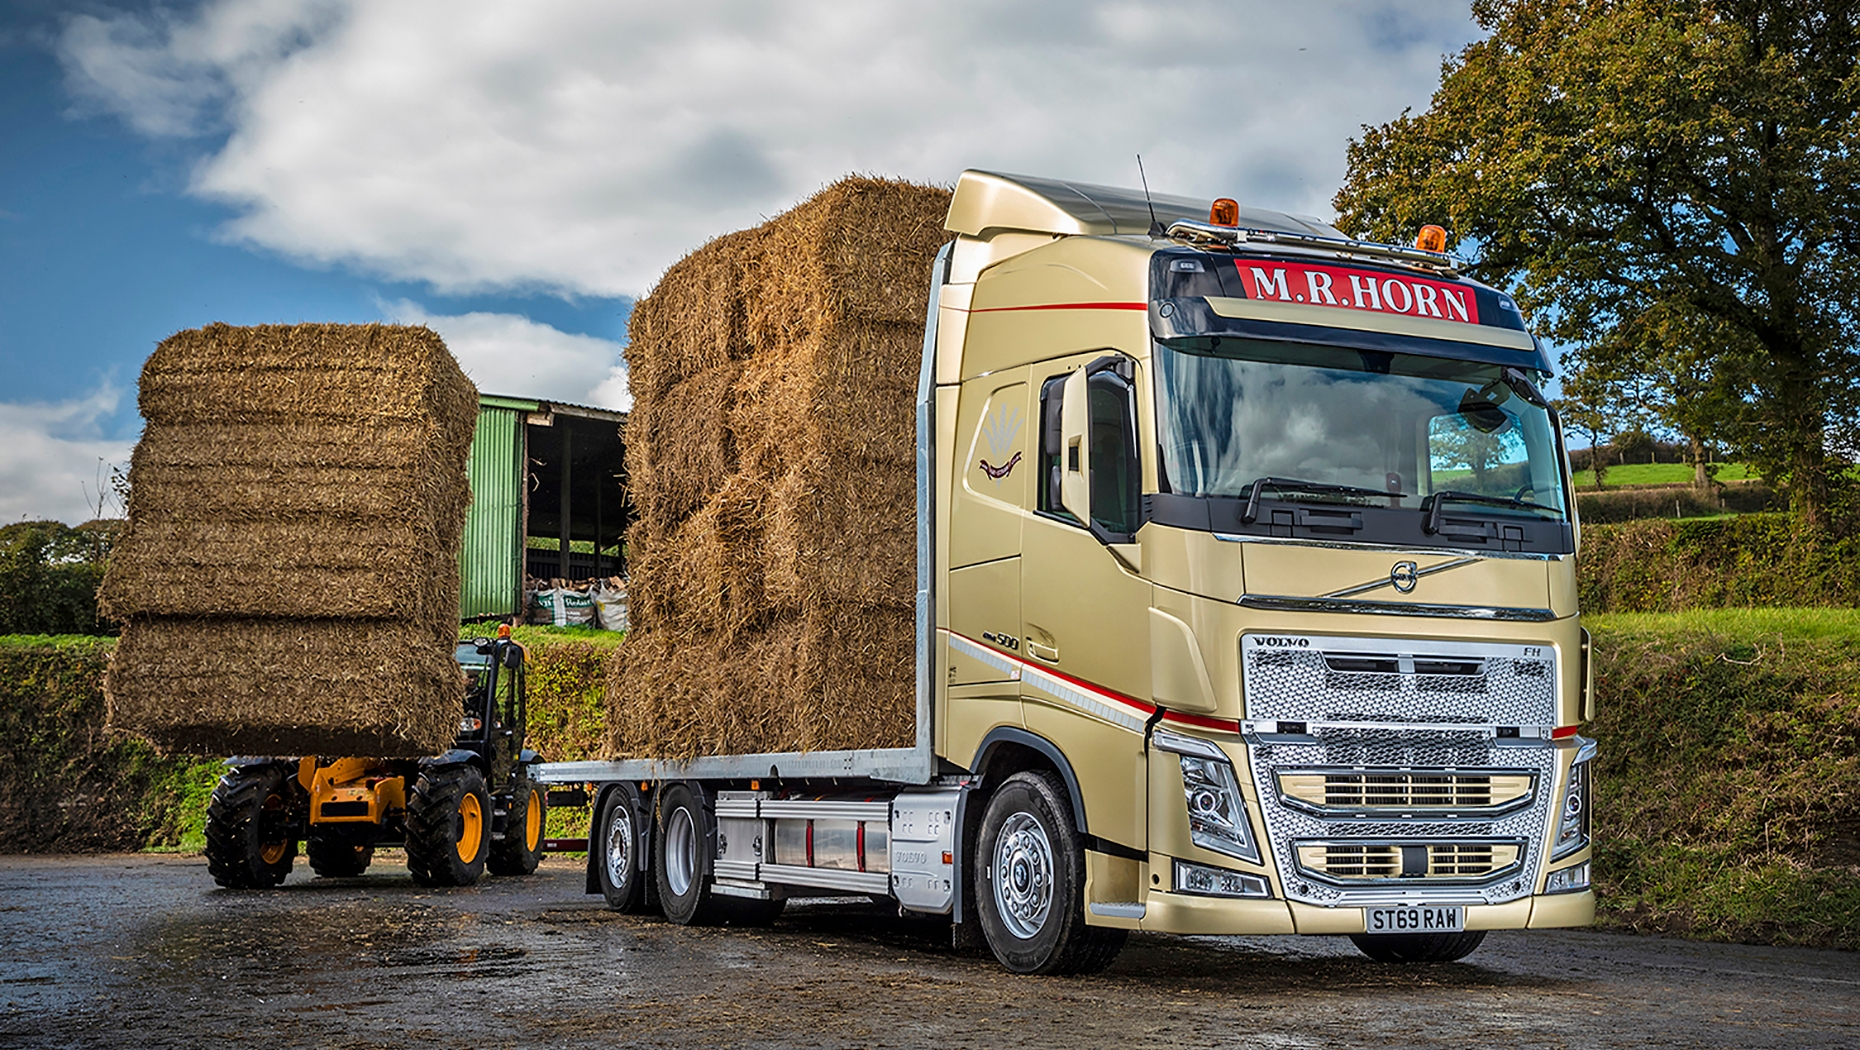 Devon based, M.R. Horn Transport Ltd has taken delivery of a special liveried gold Volvo FH 6x2 rigid to mark its 35th anniversary transporting hay and straw.